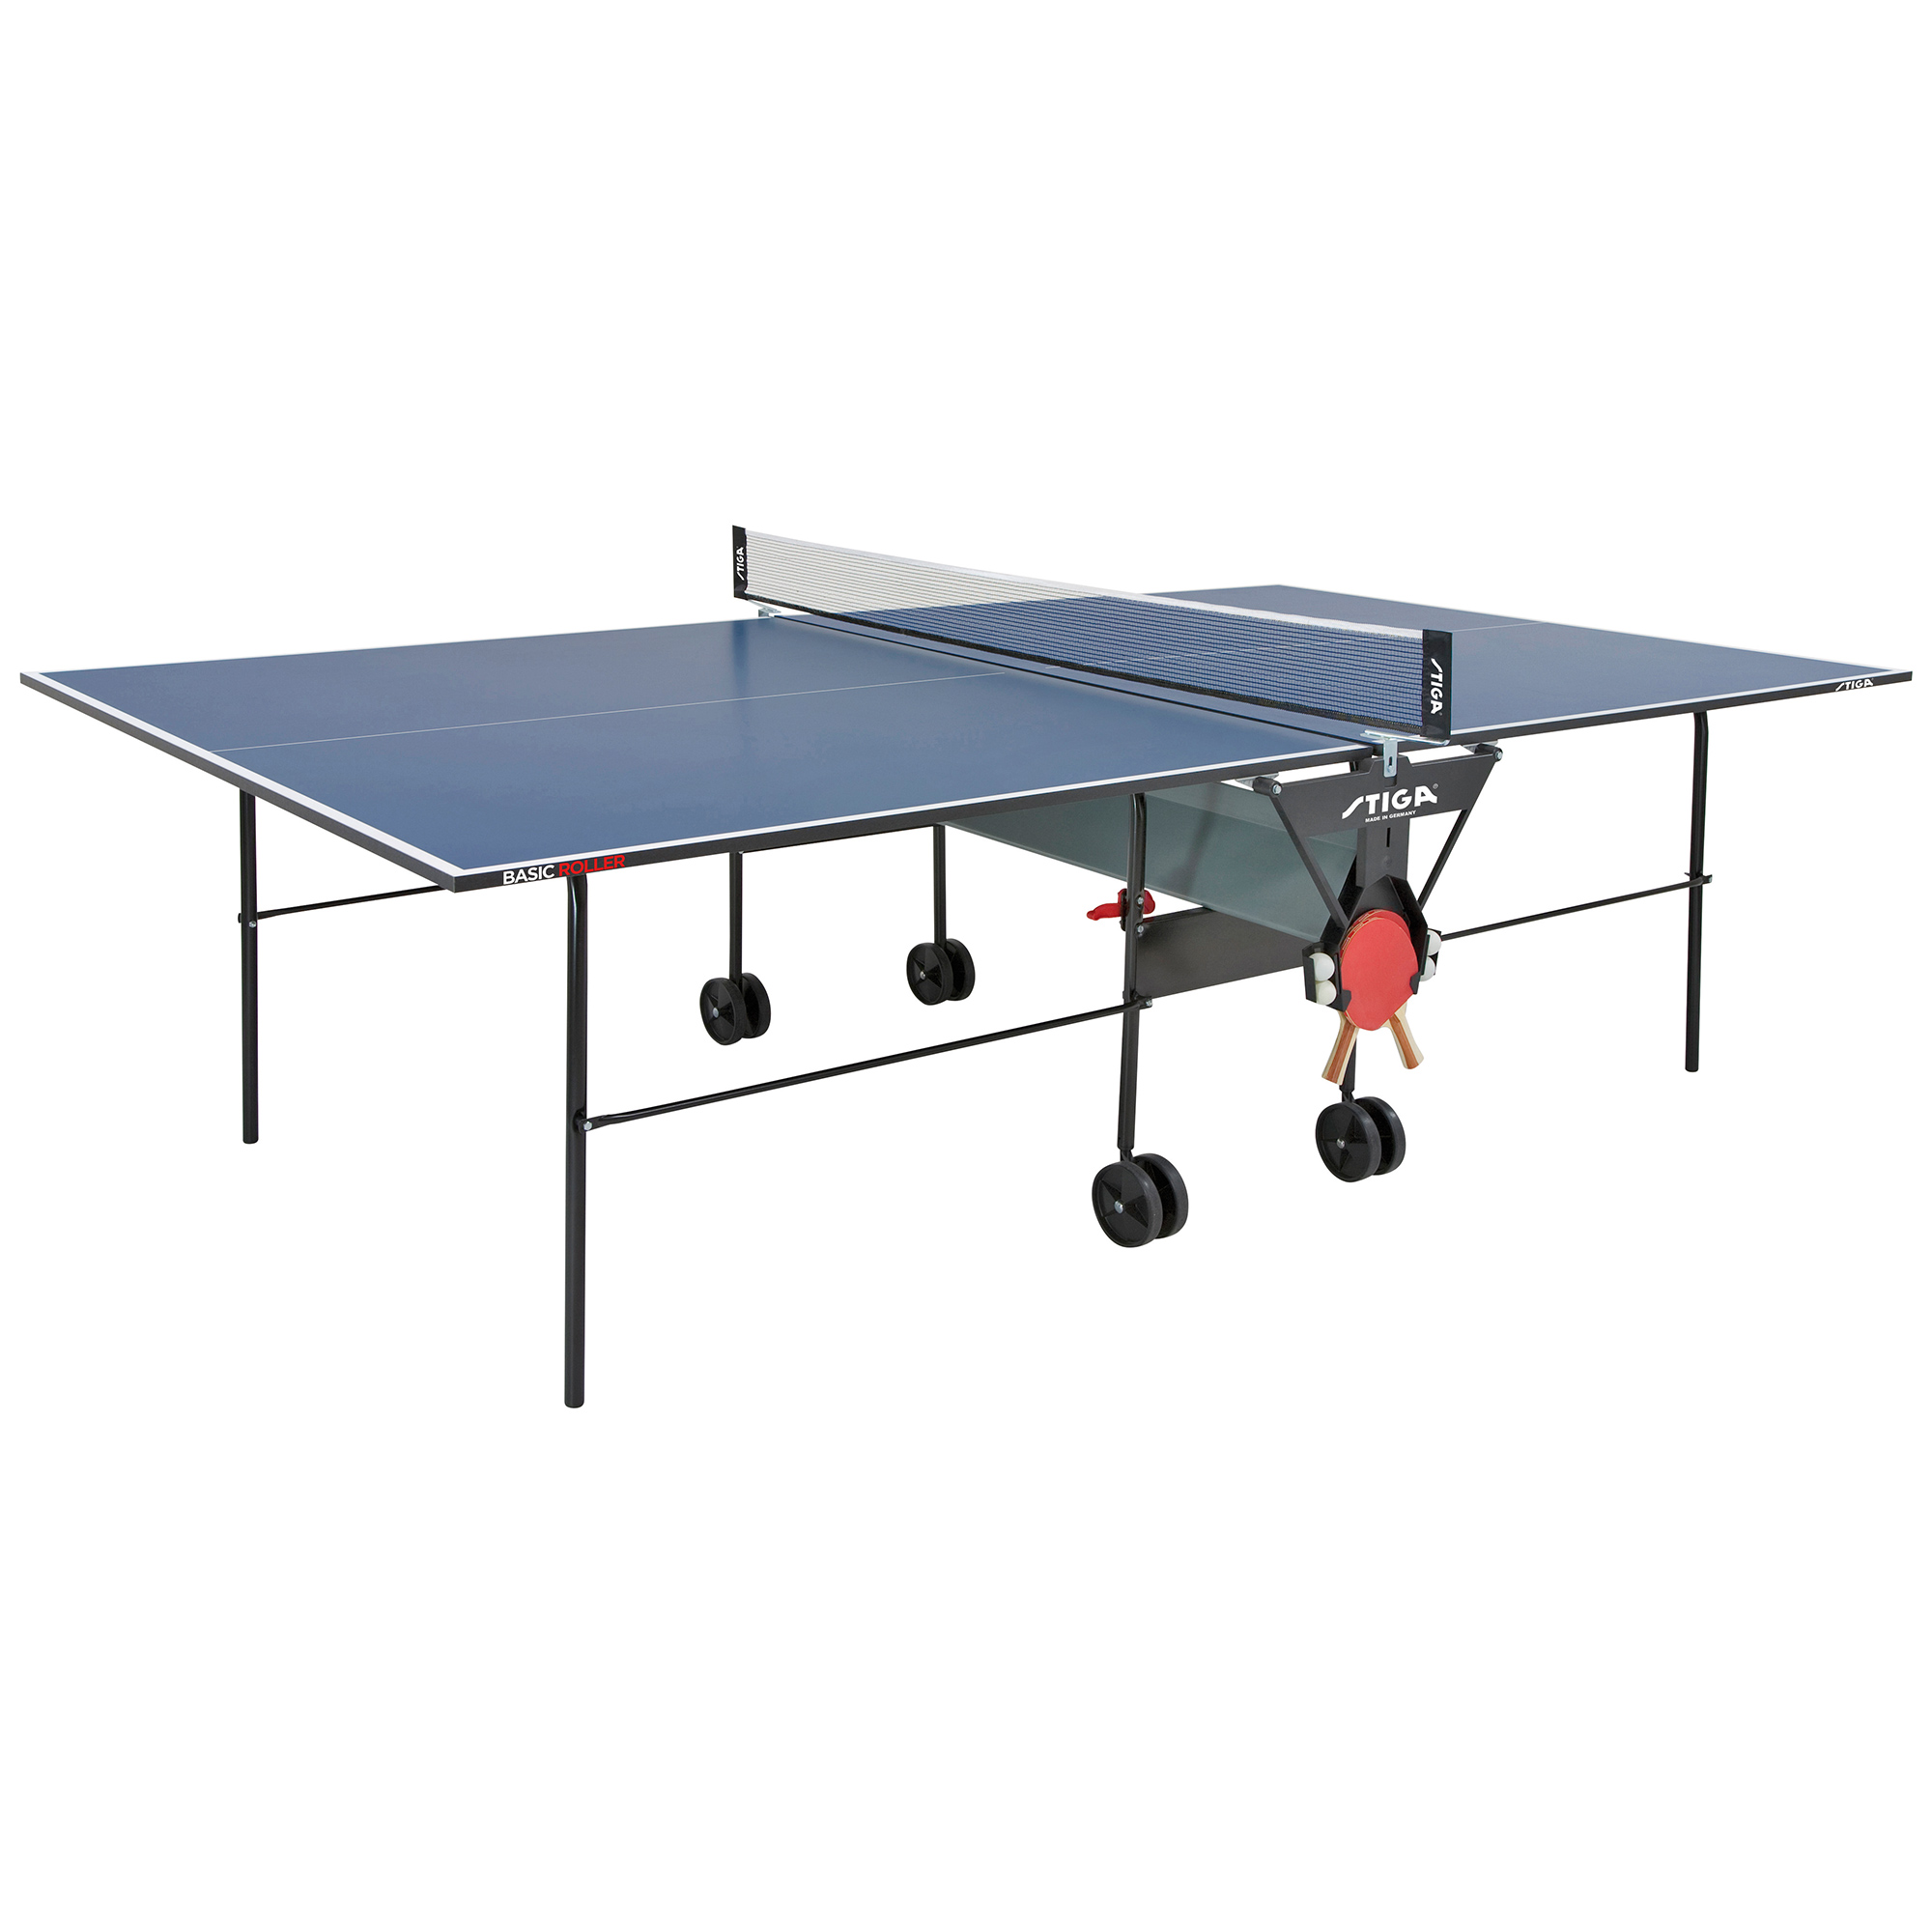 Stiga action roller indoor table tennis table for Basic html table